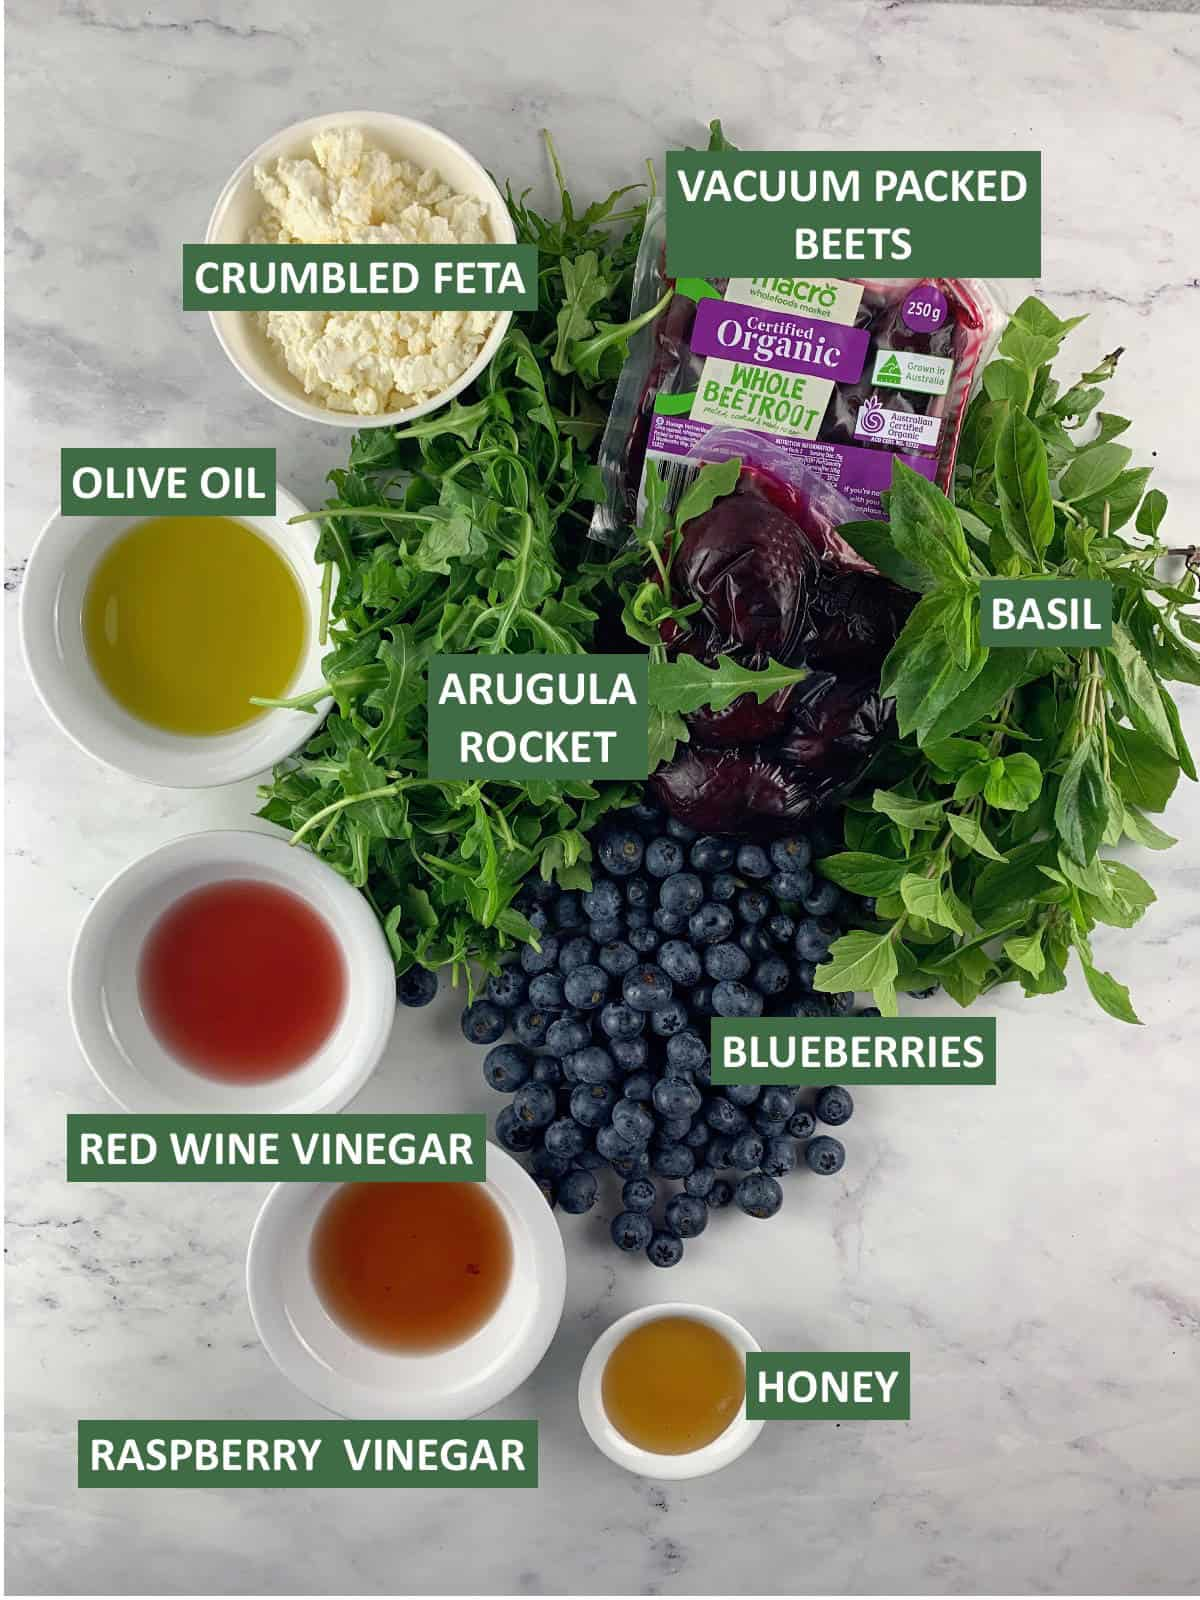 RED WHITE AND BLUE SALAD INGREDIENTS WITH TEXT